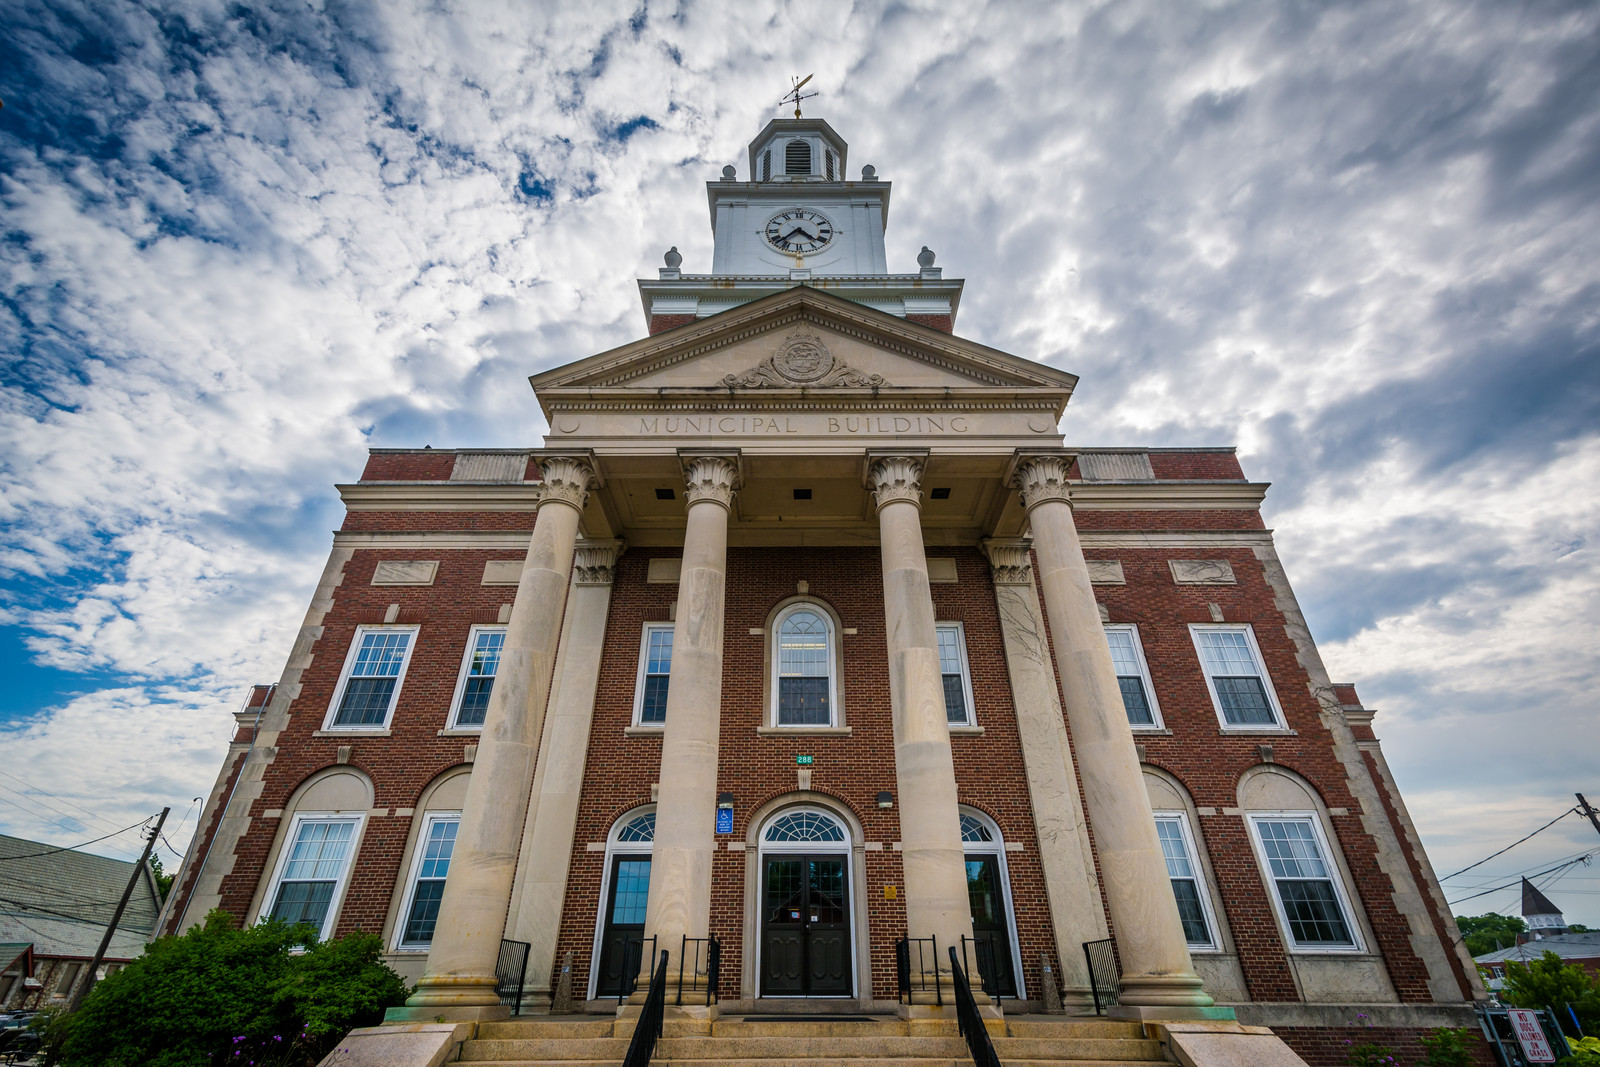 City Hall , tall brick building with four large pillars and a clock tower, in Dover New Hampshire